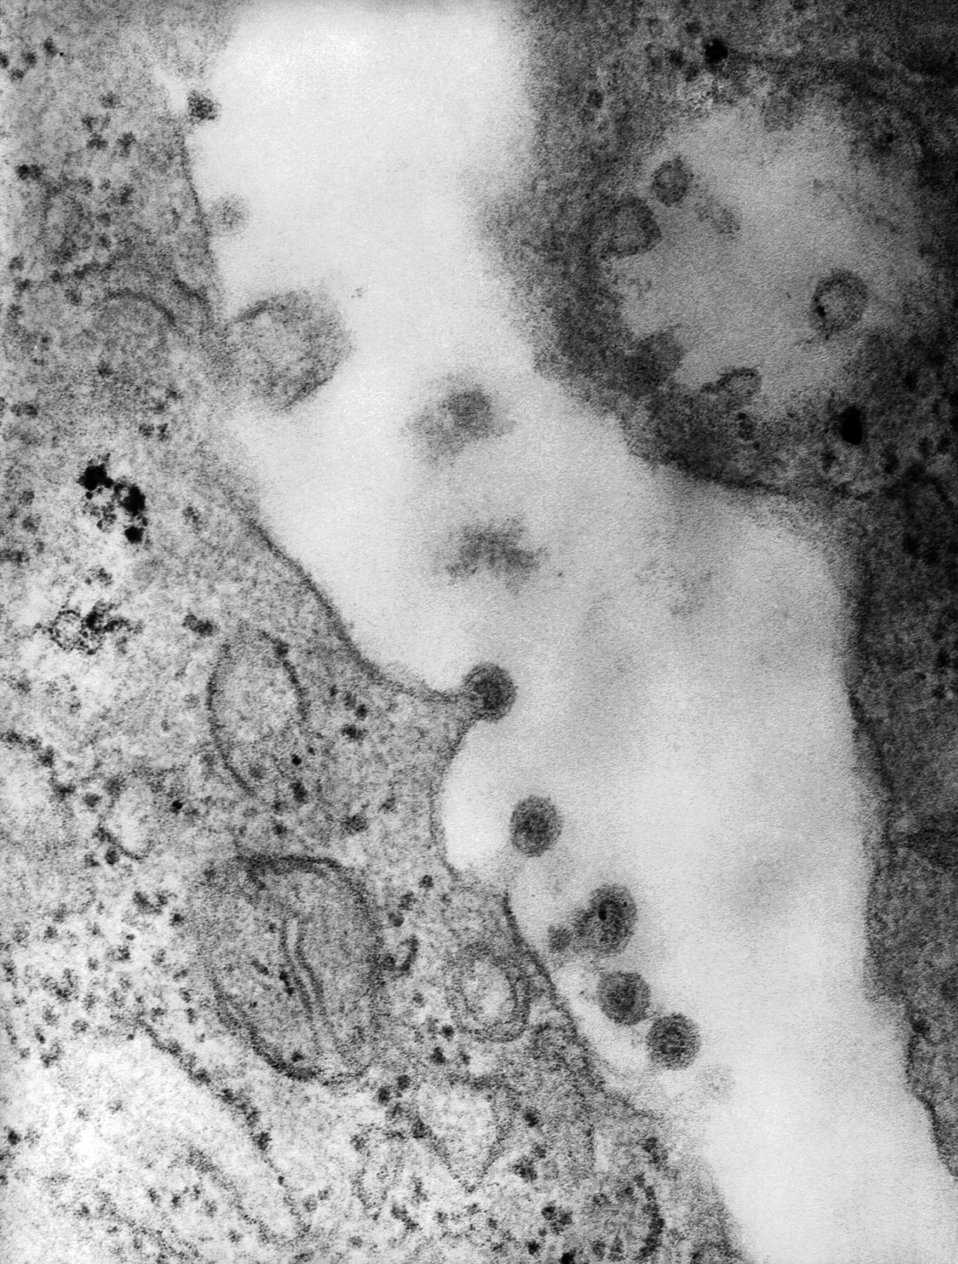 This negatively-stained transmission electron micrograph (TEM) revealed the presence of Rubella virus virions, as they were in the process o